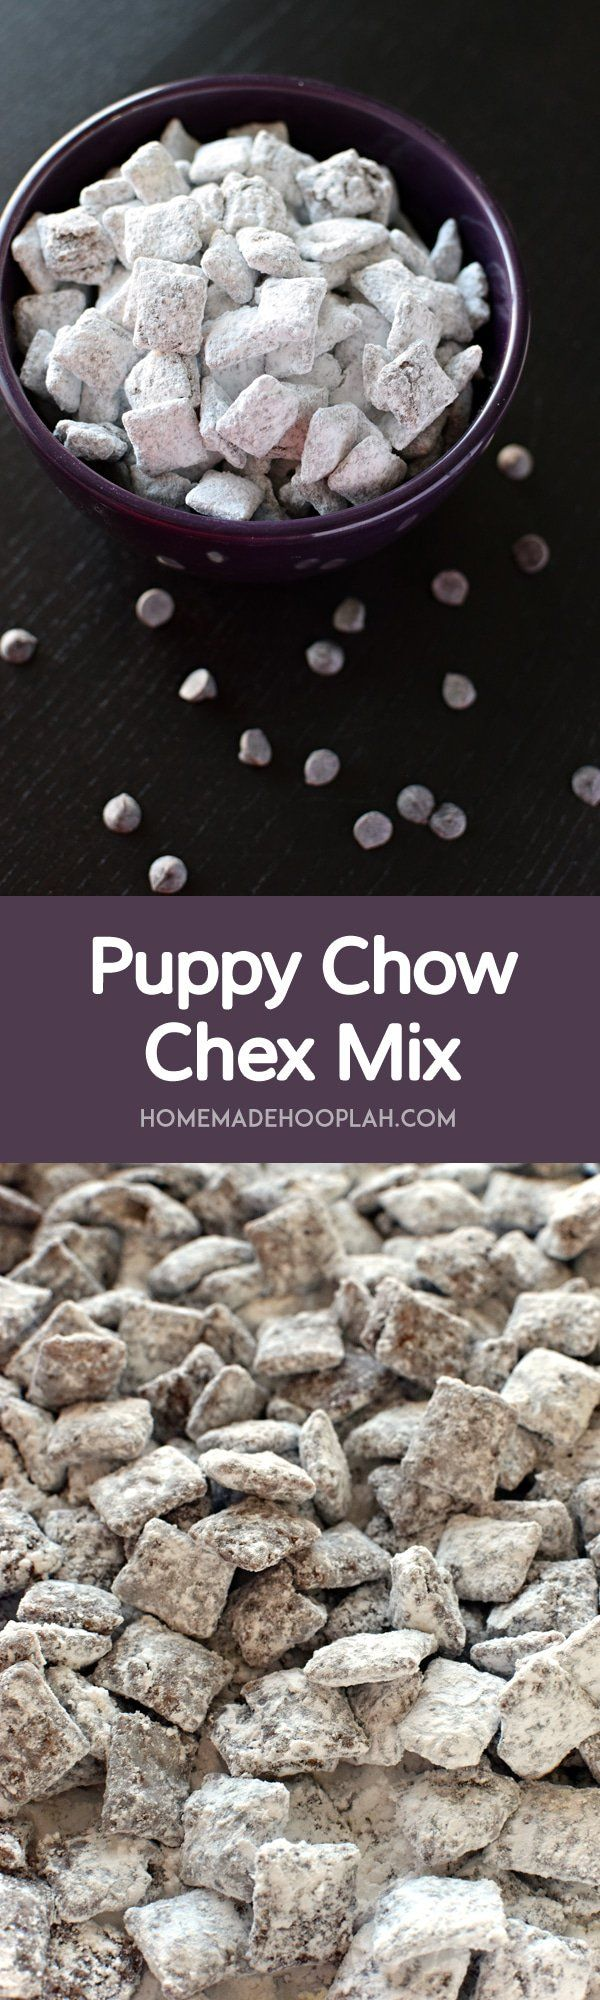 Puppy Chow Chex Mix! Crunchy Chex cereal covered in chocolate, peanut butter, and sugar. Puppy Chow Chex Mix is the classic winter snack food!   HomemadeHooplah.com